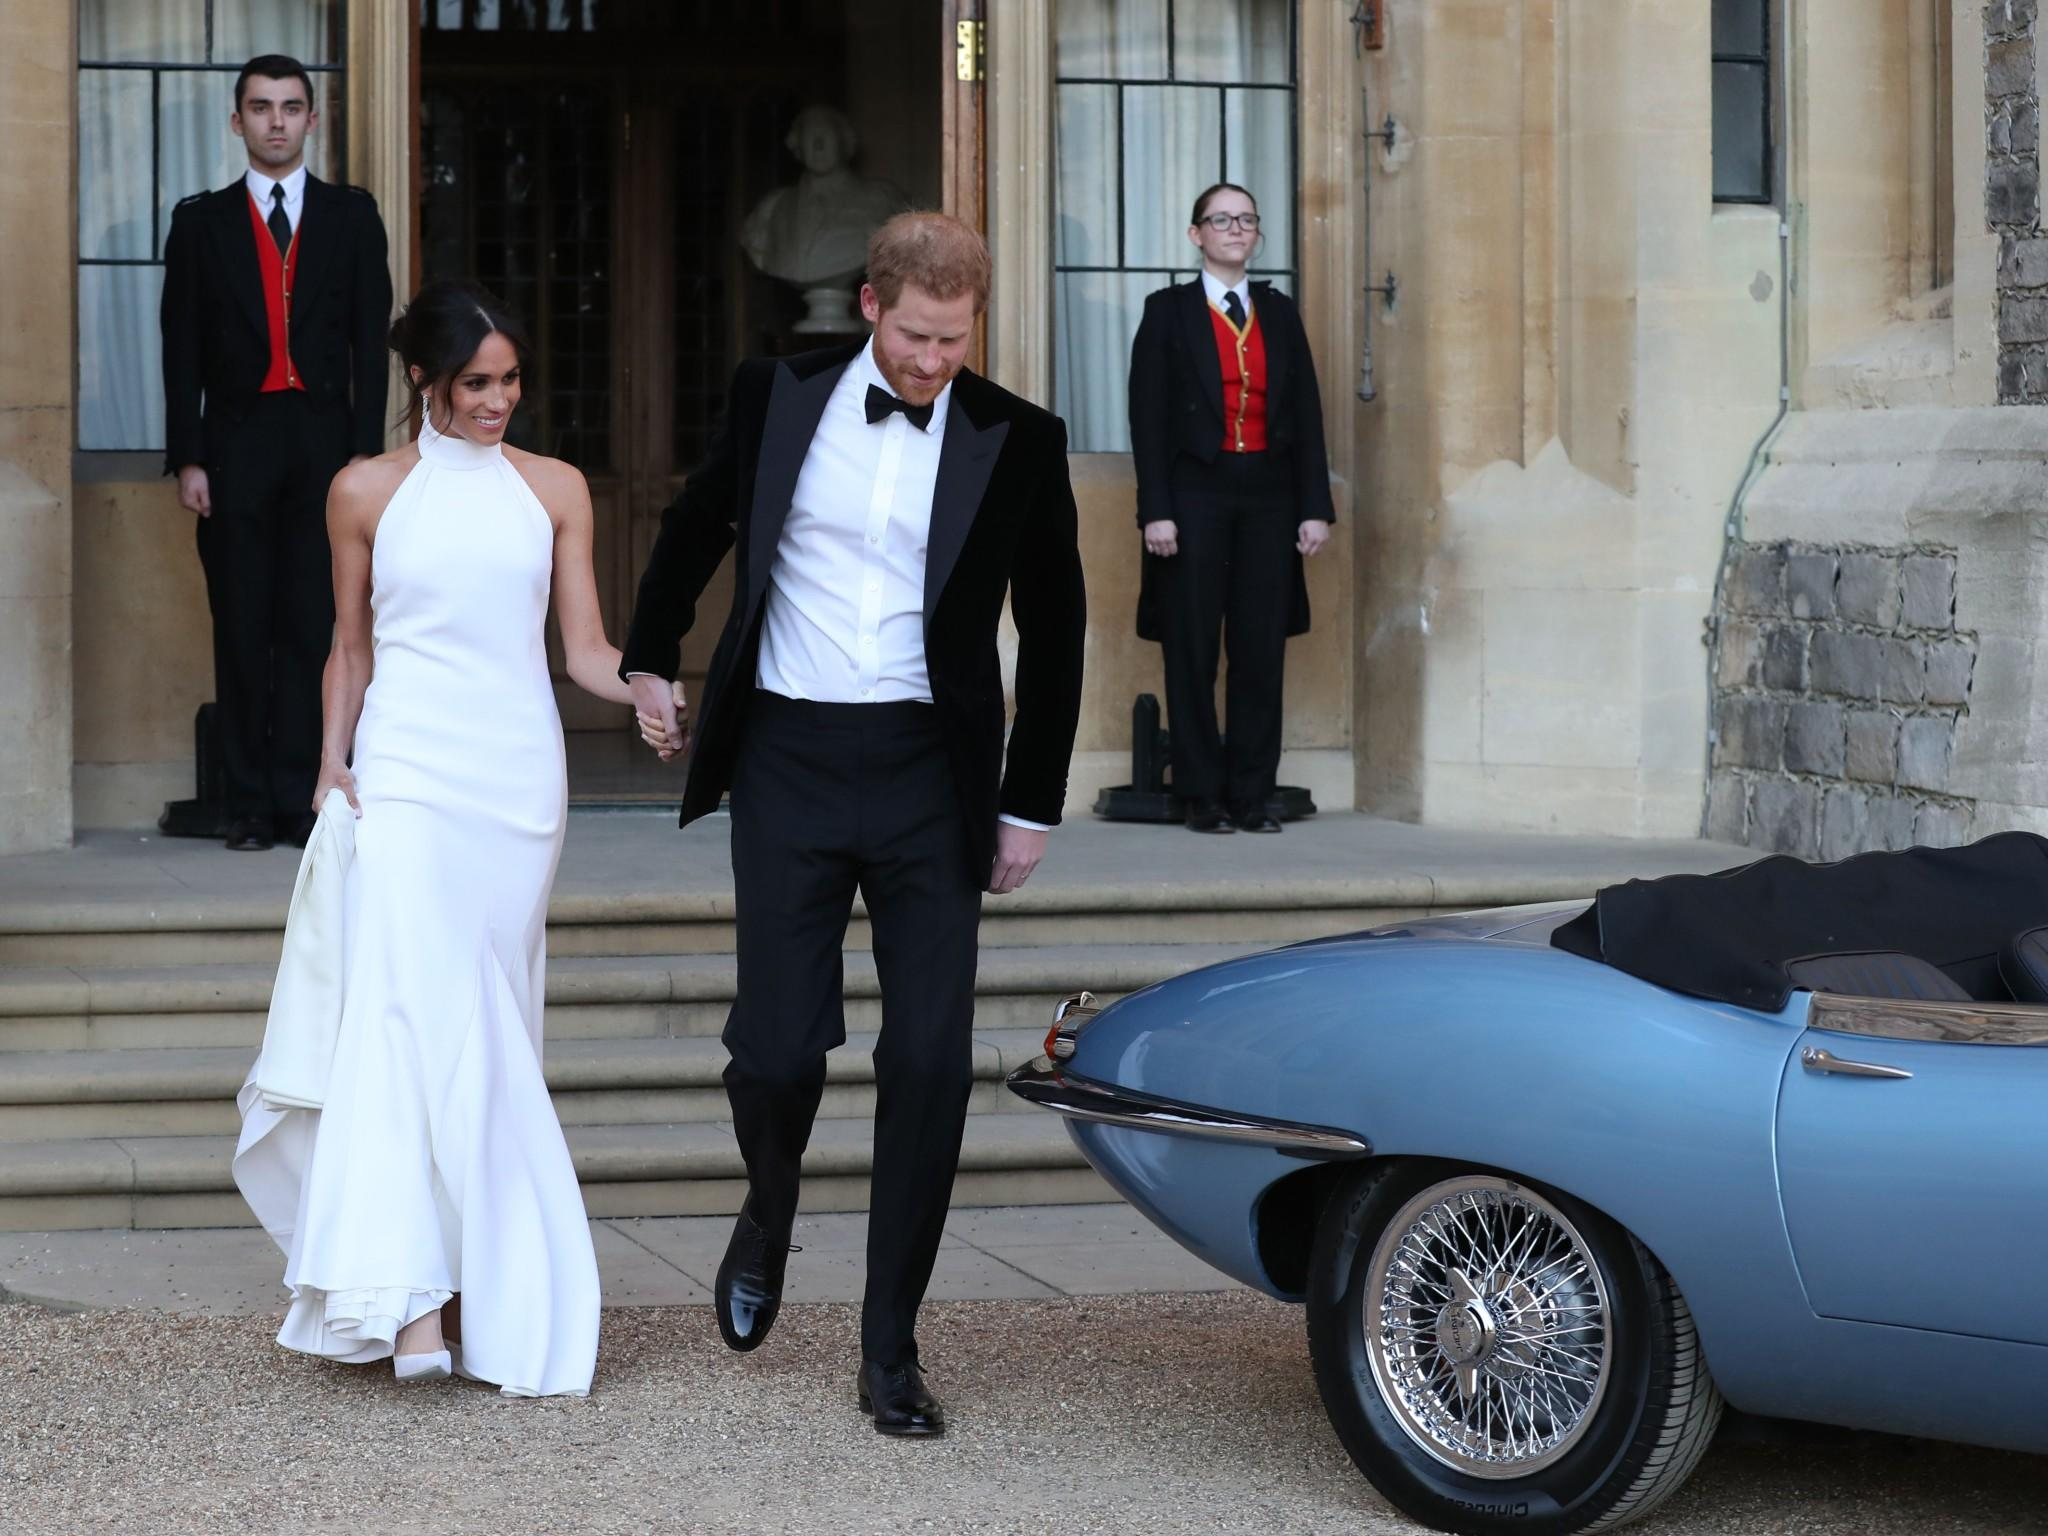 Royal Wedding: Prinz Harry und Meghan Markle sagen Ja